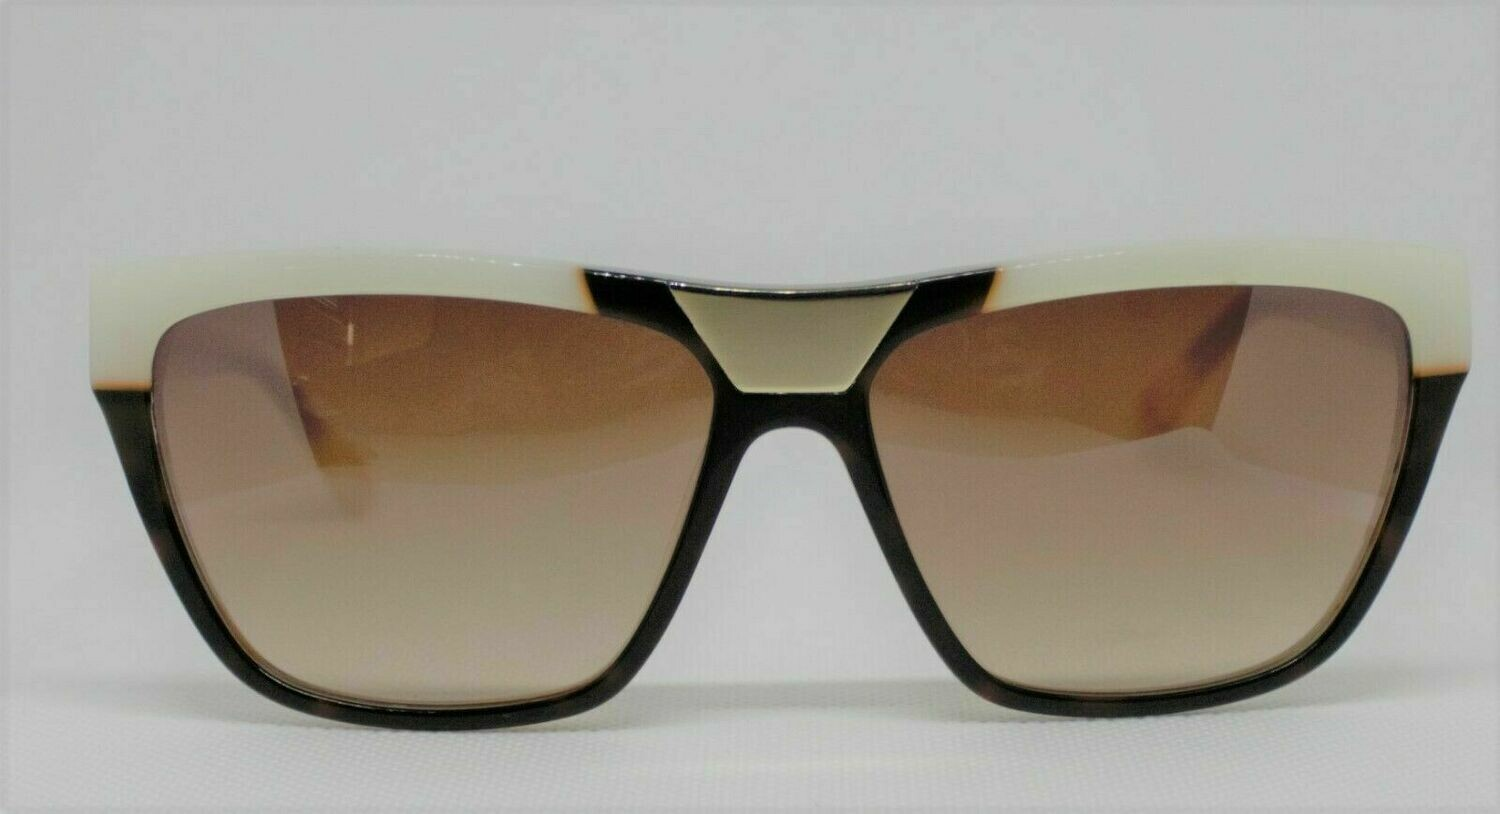 L.A.M.B. LA506 Gwen Stefani's Designer Sunglasses color:HAVANA Case included